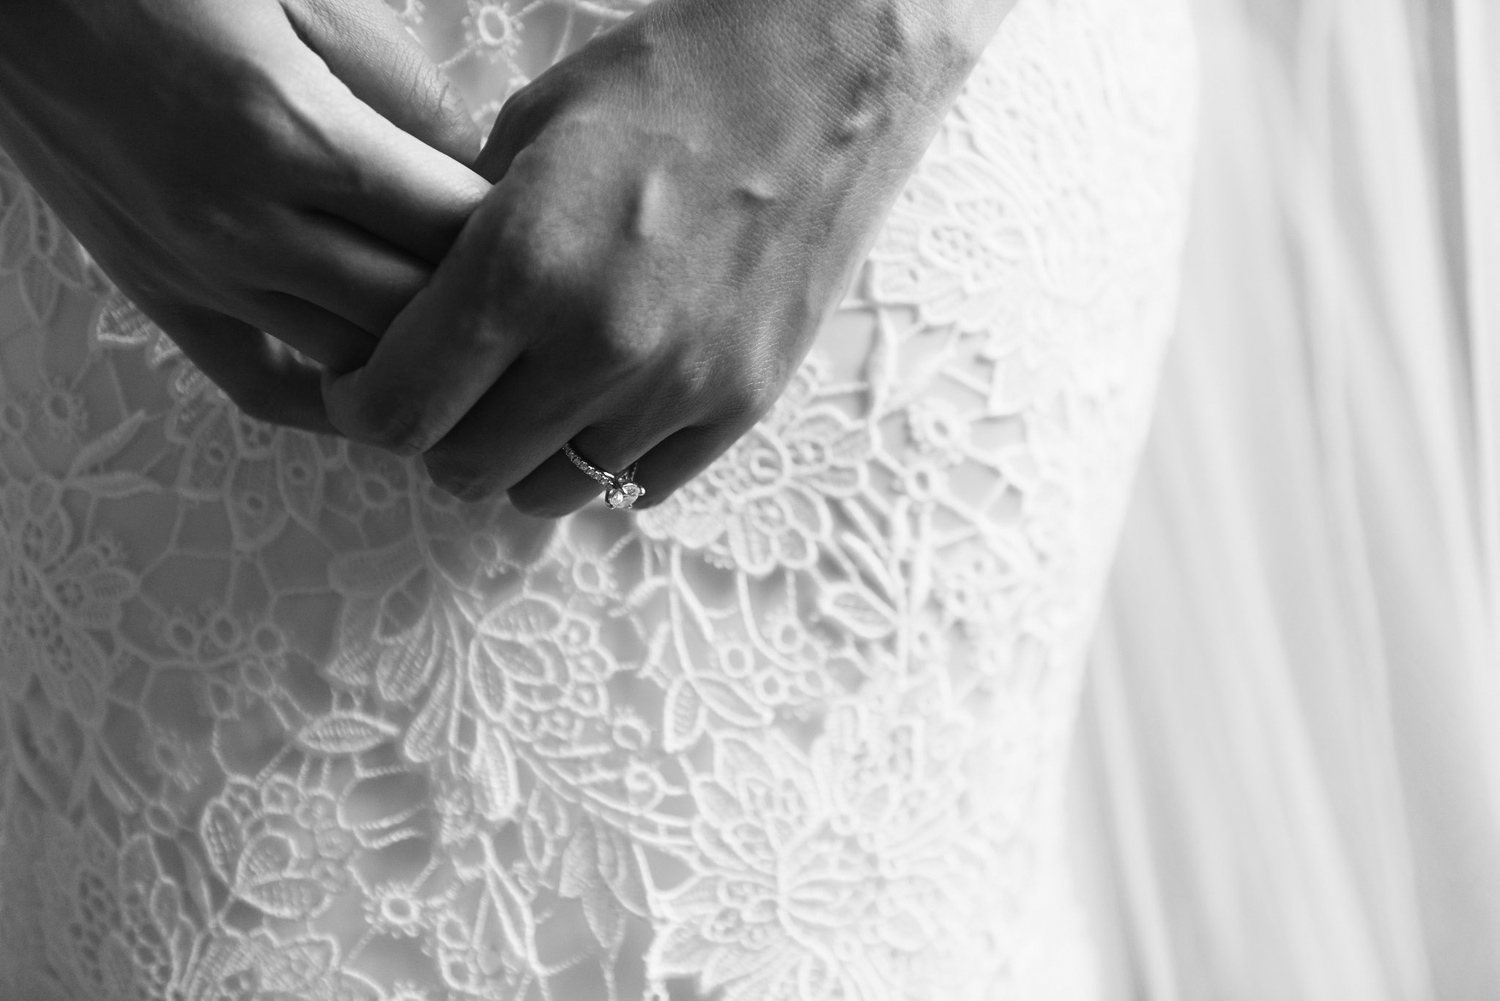 katie_mitchell_wedding_florence_tuscany_villa_di_miano_wedding_photography_08.jpg